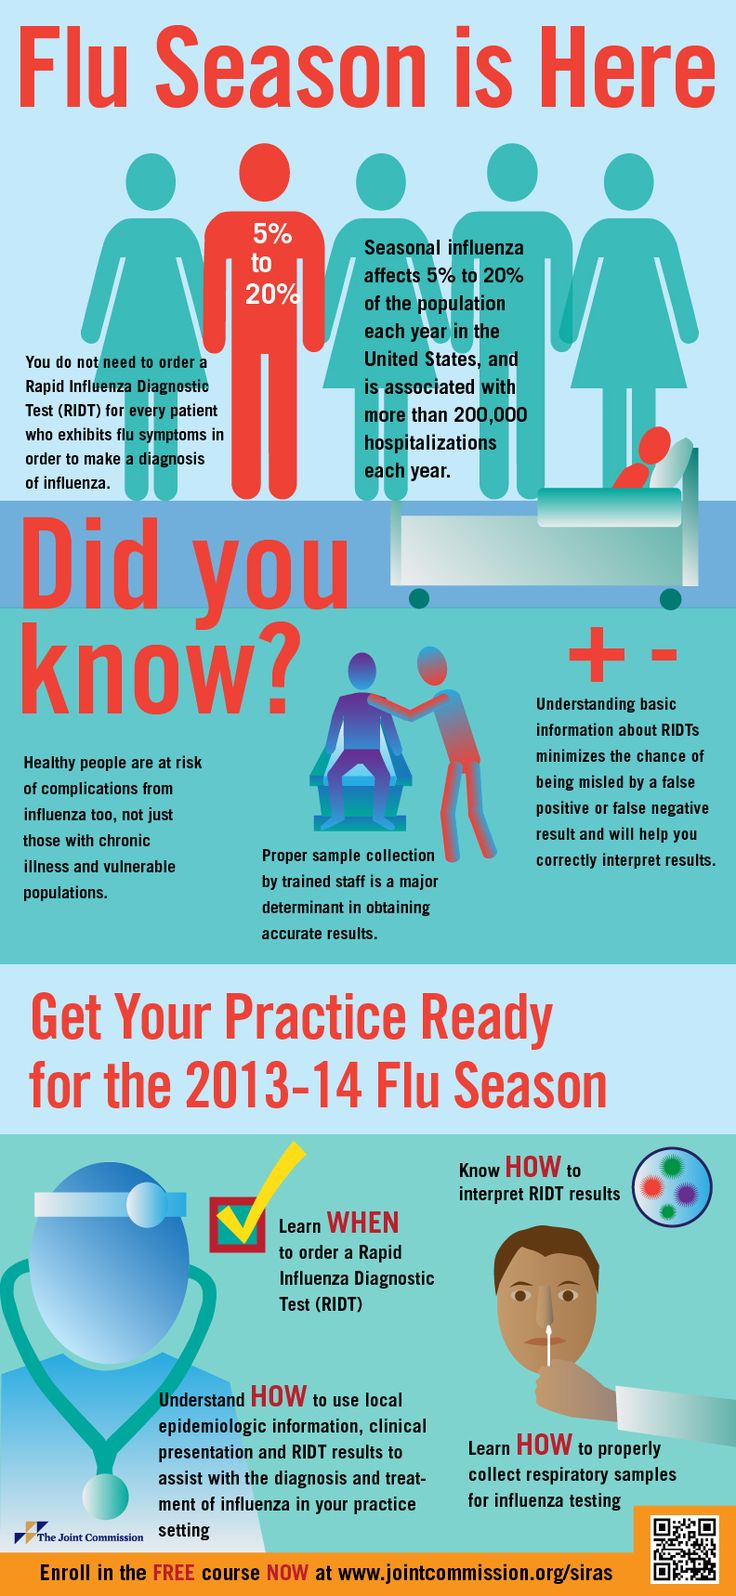 Part 2 of Flu Season: Influenza B is ready to strike. Infographic: Get ready for 2013-14 flu season